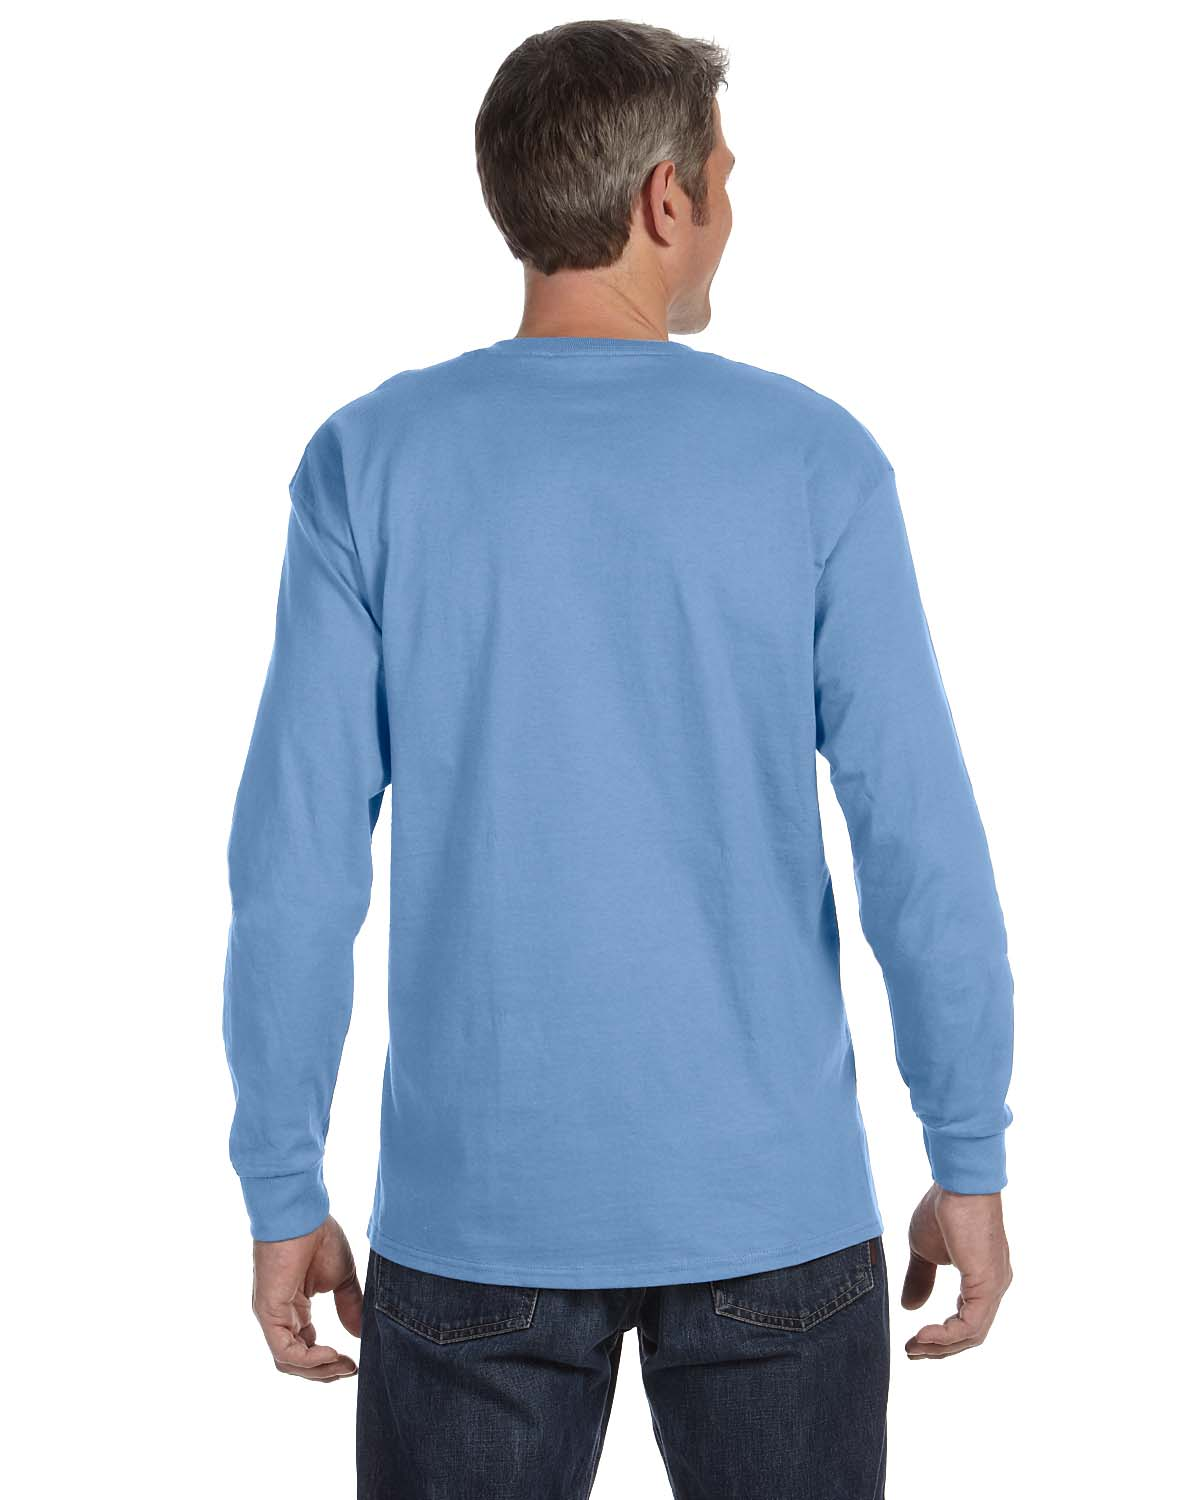 Gildan-Mens-T-Shirt-Long-Sleeve-Heavy-Cotton-5-3-oz-S-XL-R-G540-5400 thumbnail 14